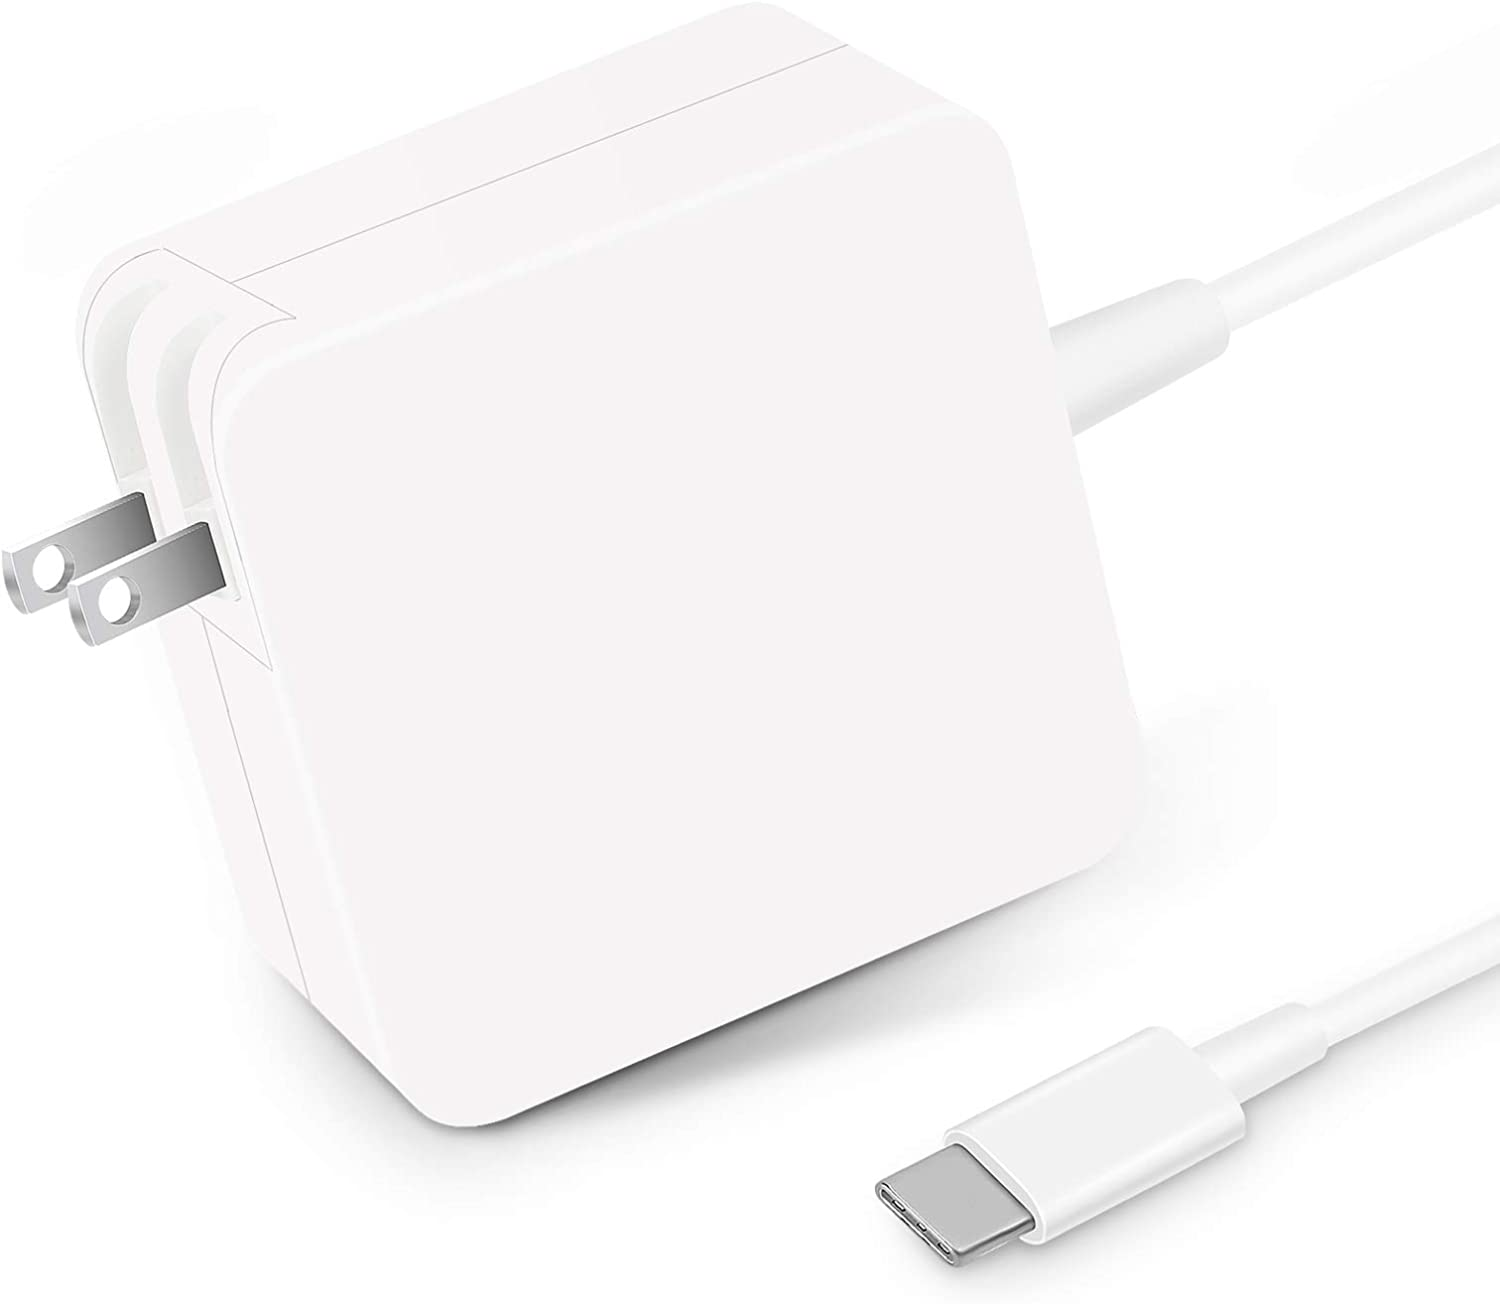 Huanxilu 61W PD Charger, USB-C Charger Compatible for MacBook Pro, Dell XPS, Chromebook, Lenovo, Huawei Matebook, HP Spectre, Acer and Any Laptops or Smart Phones with USB C